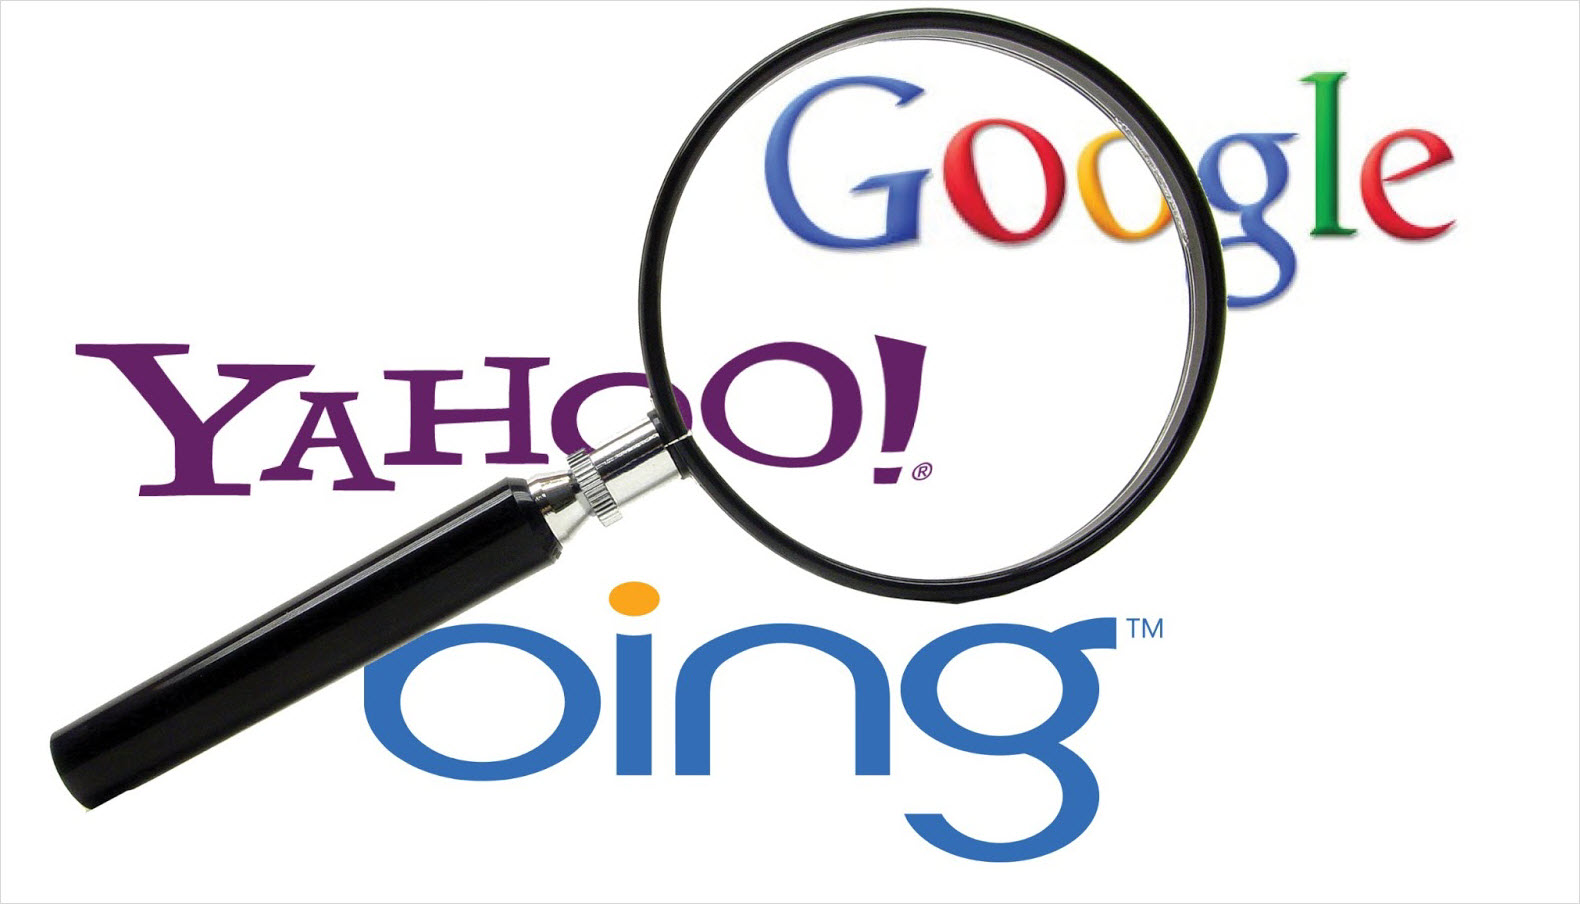 Bing clipart search engine svg transparent stock Bing, Google, Yahoo search engines SWOT analysis - The Internet ... svg transparent stock